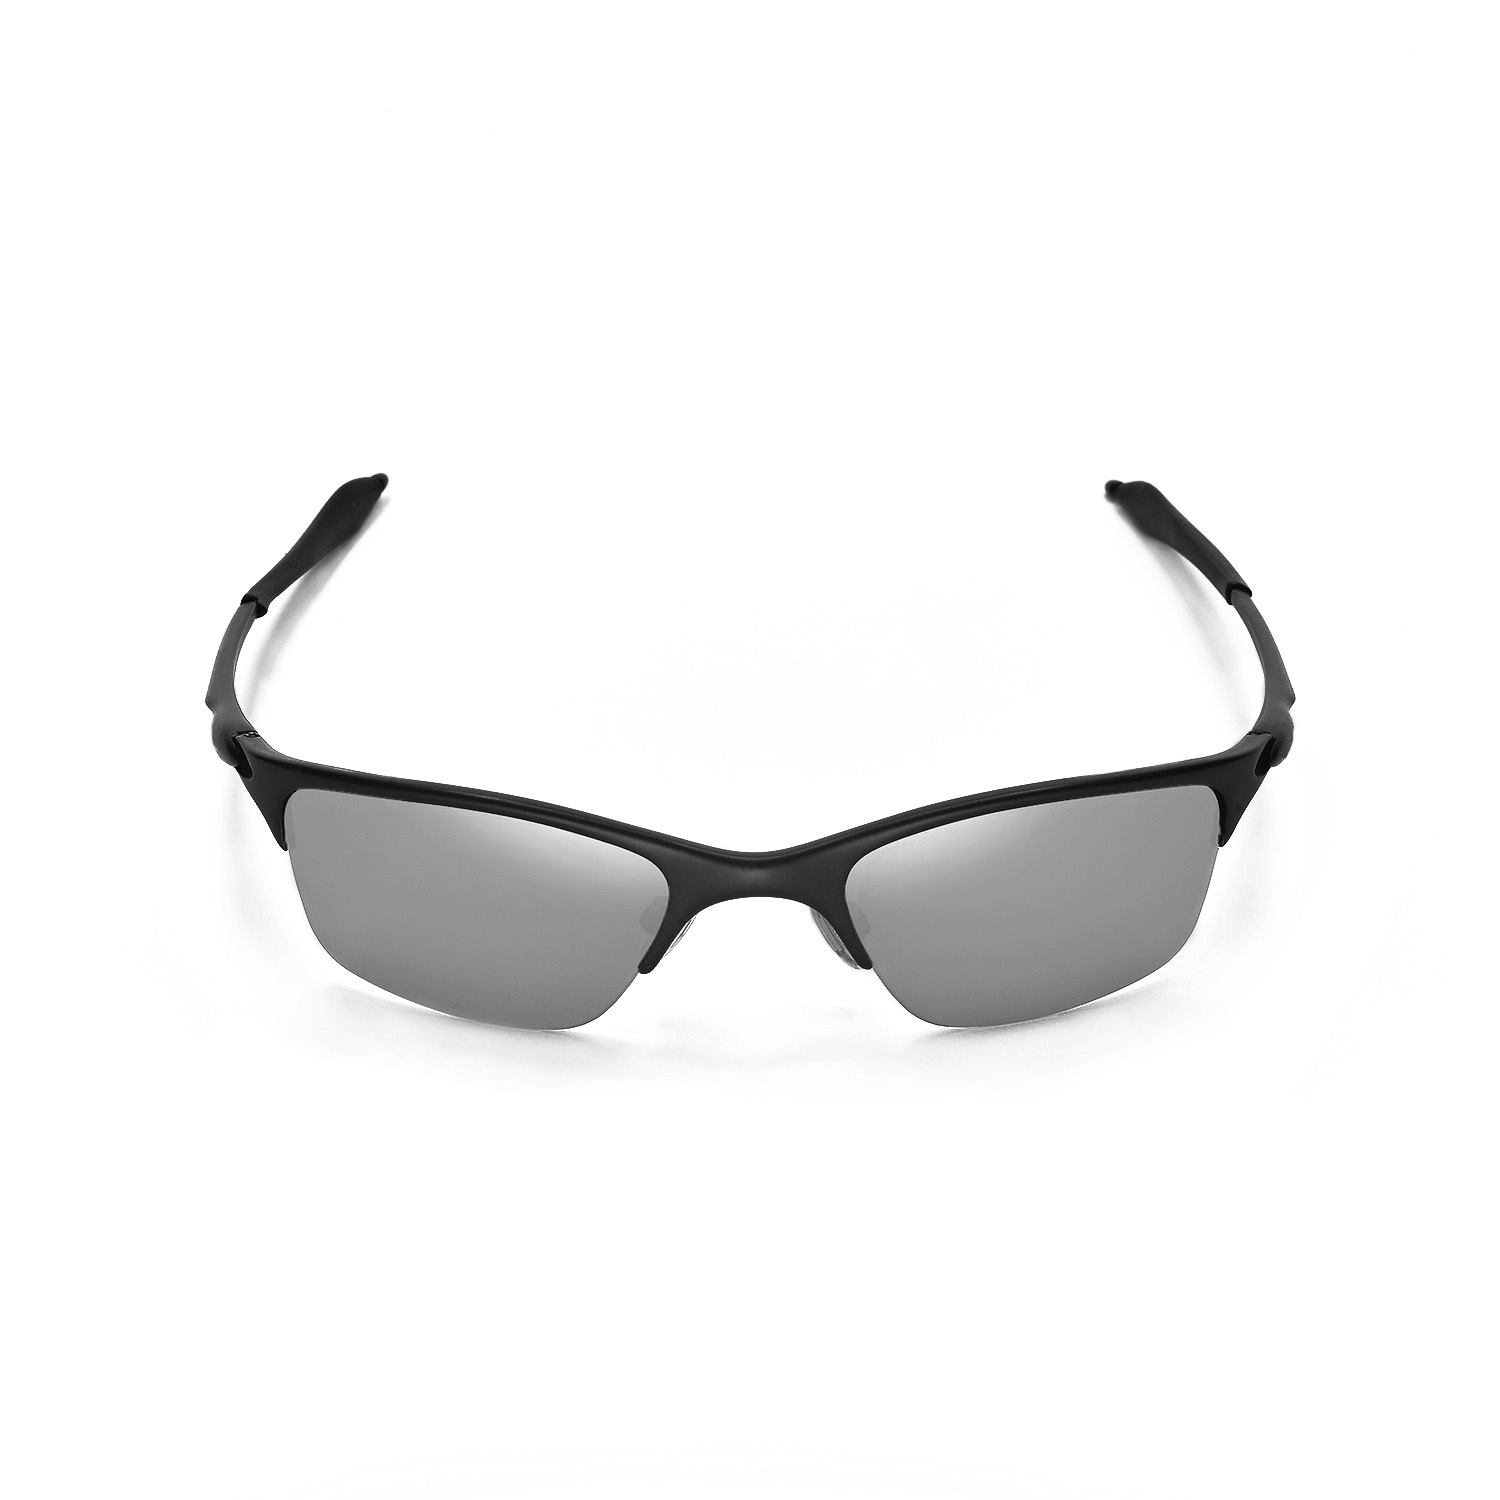 oakley titanium sunglasses z3g0  New Walleva Polarized Titanium Lenses For Oakley Half Wire XL